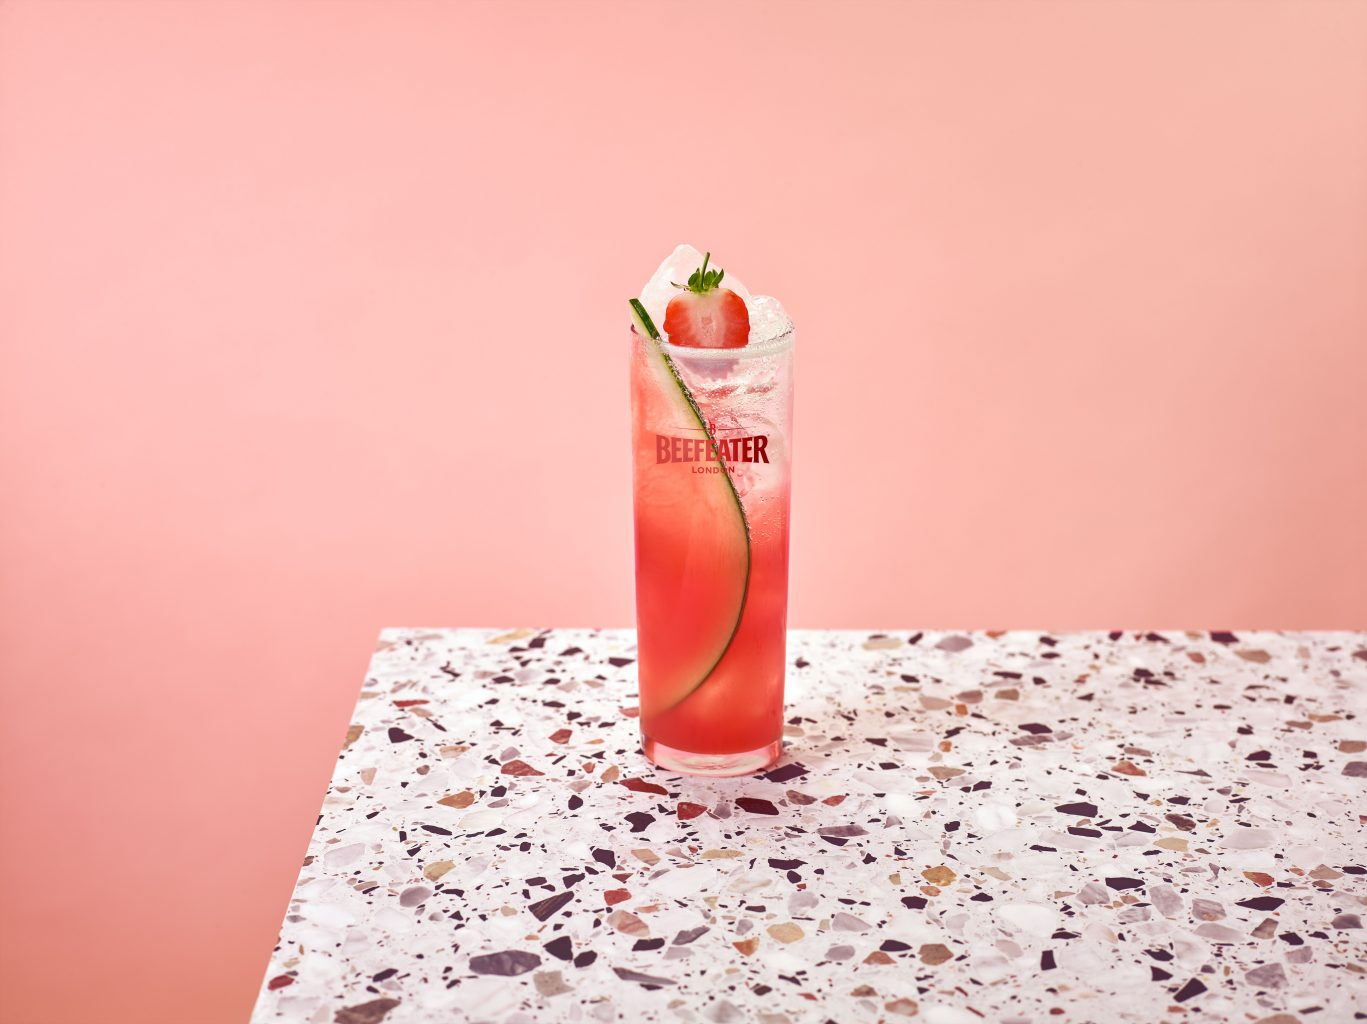 RL Beefeater Summer Pink Punch W2a LOGO | Beefeater Pink Strawberry & Blood Orange